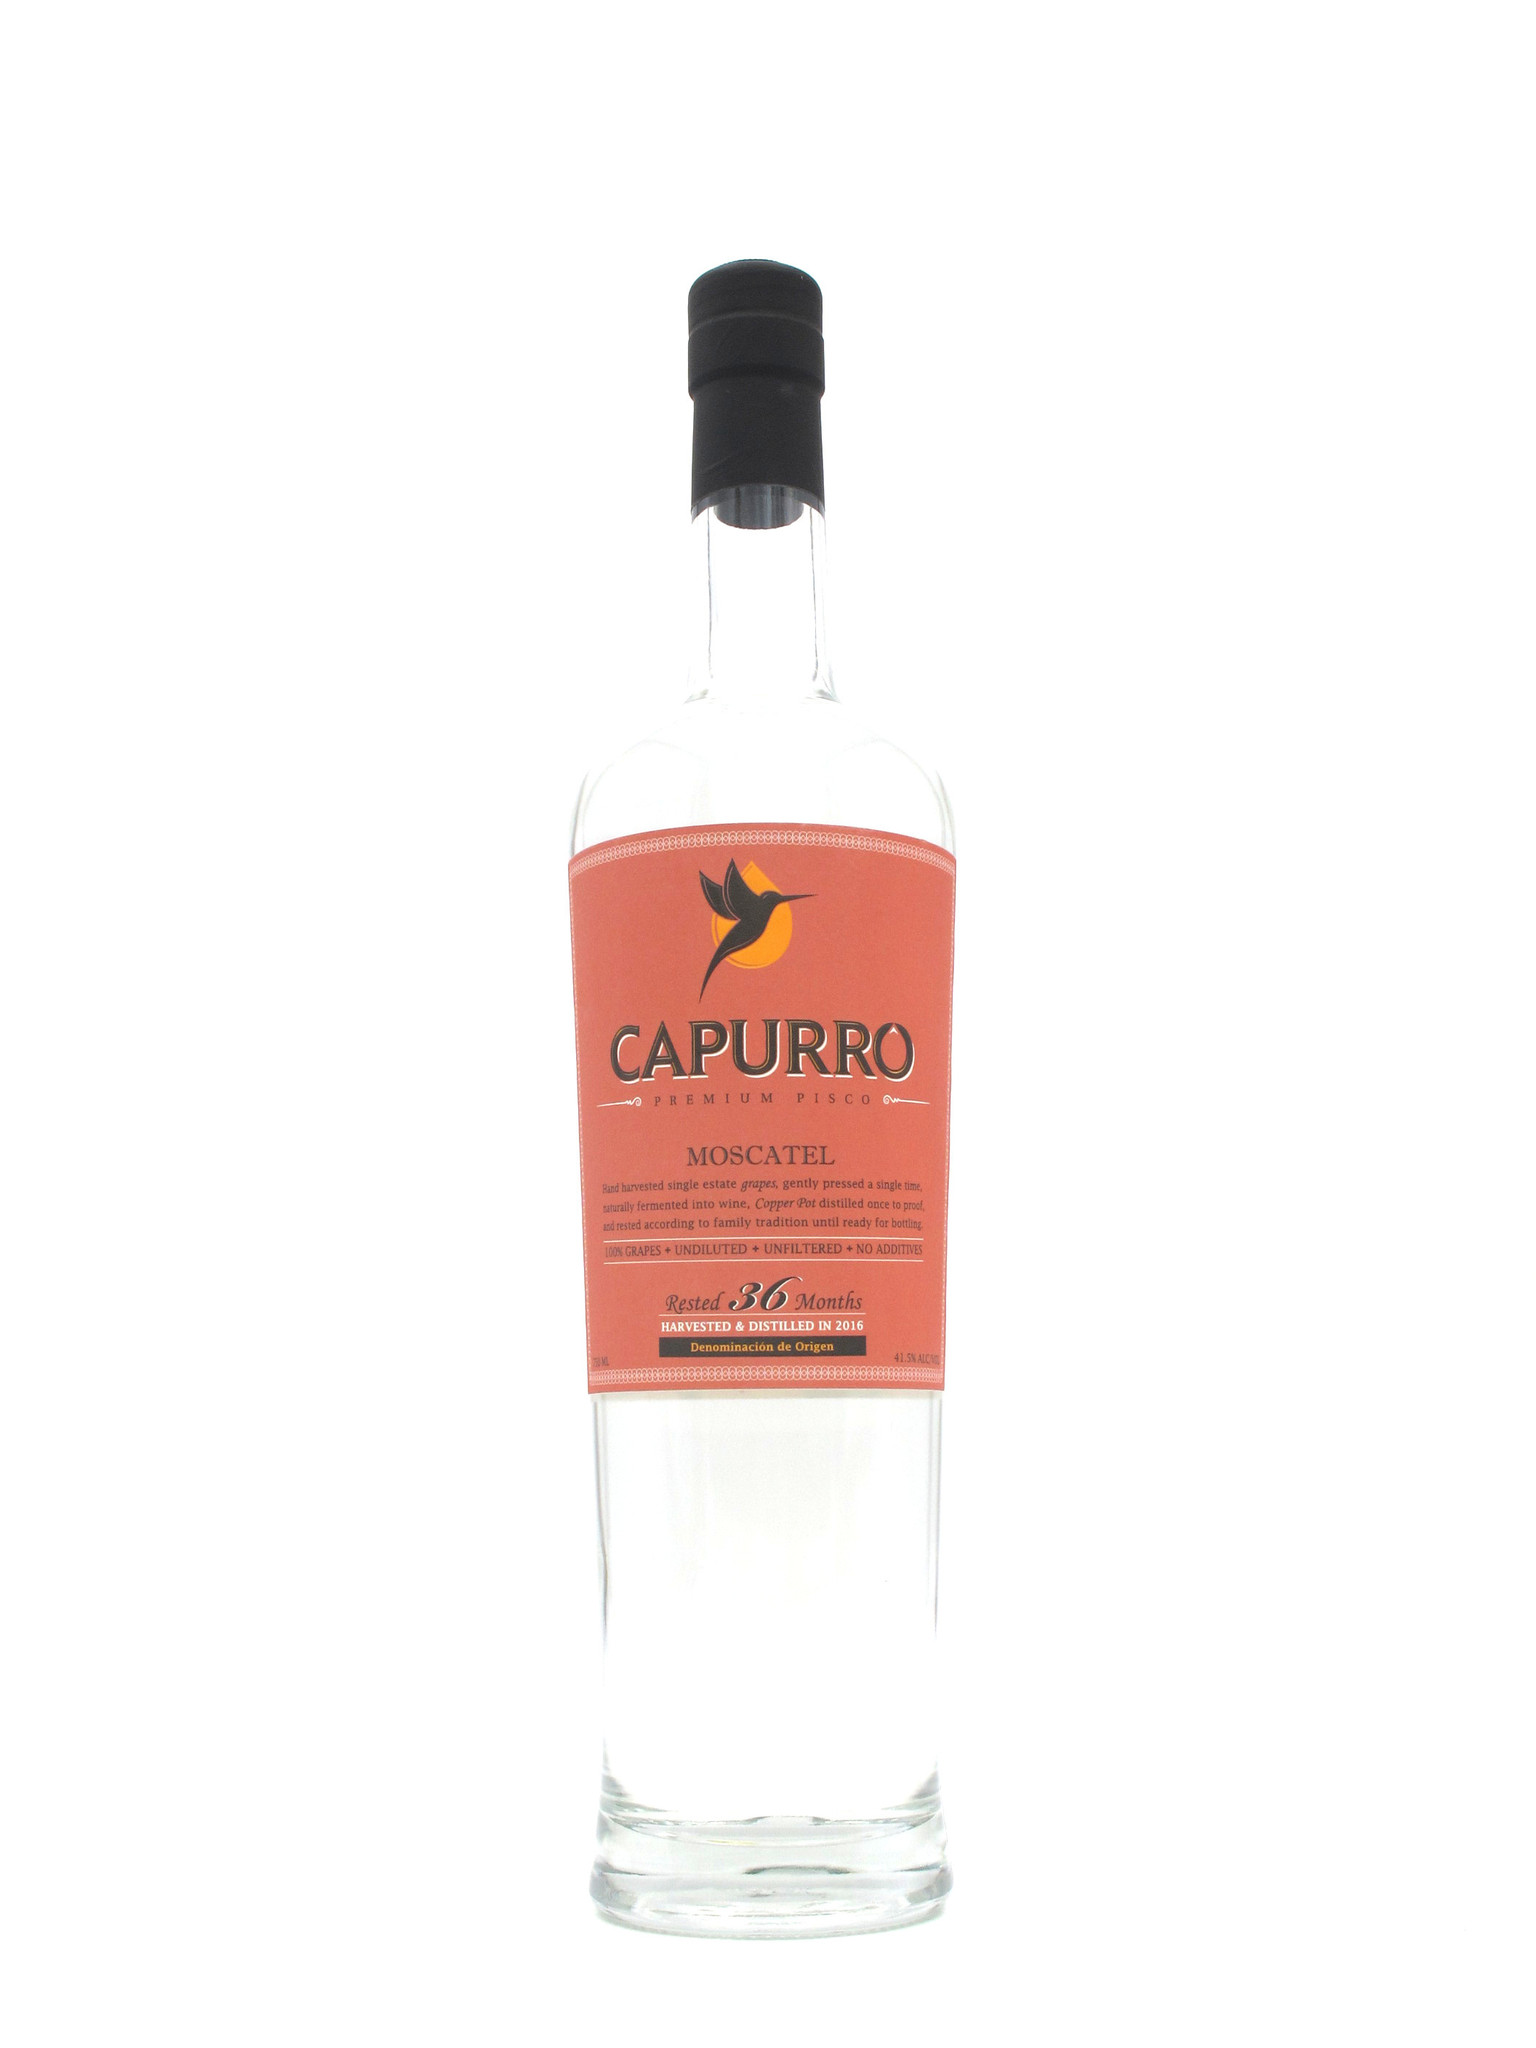 Capurro Pisco Moscatel 750ml